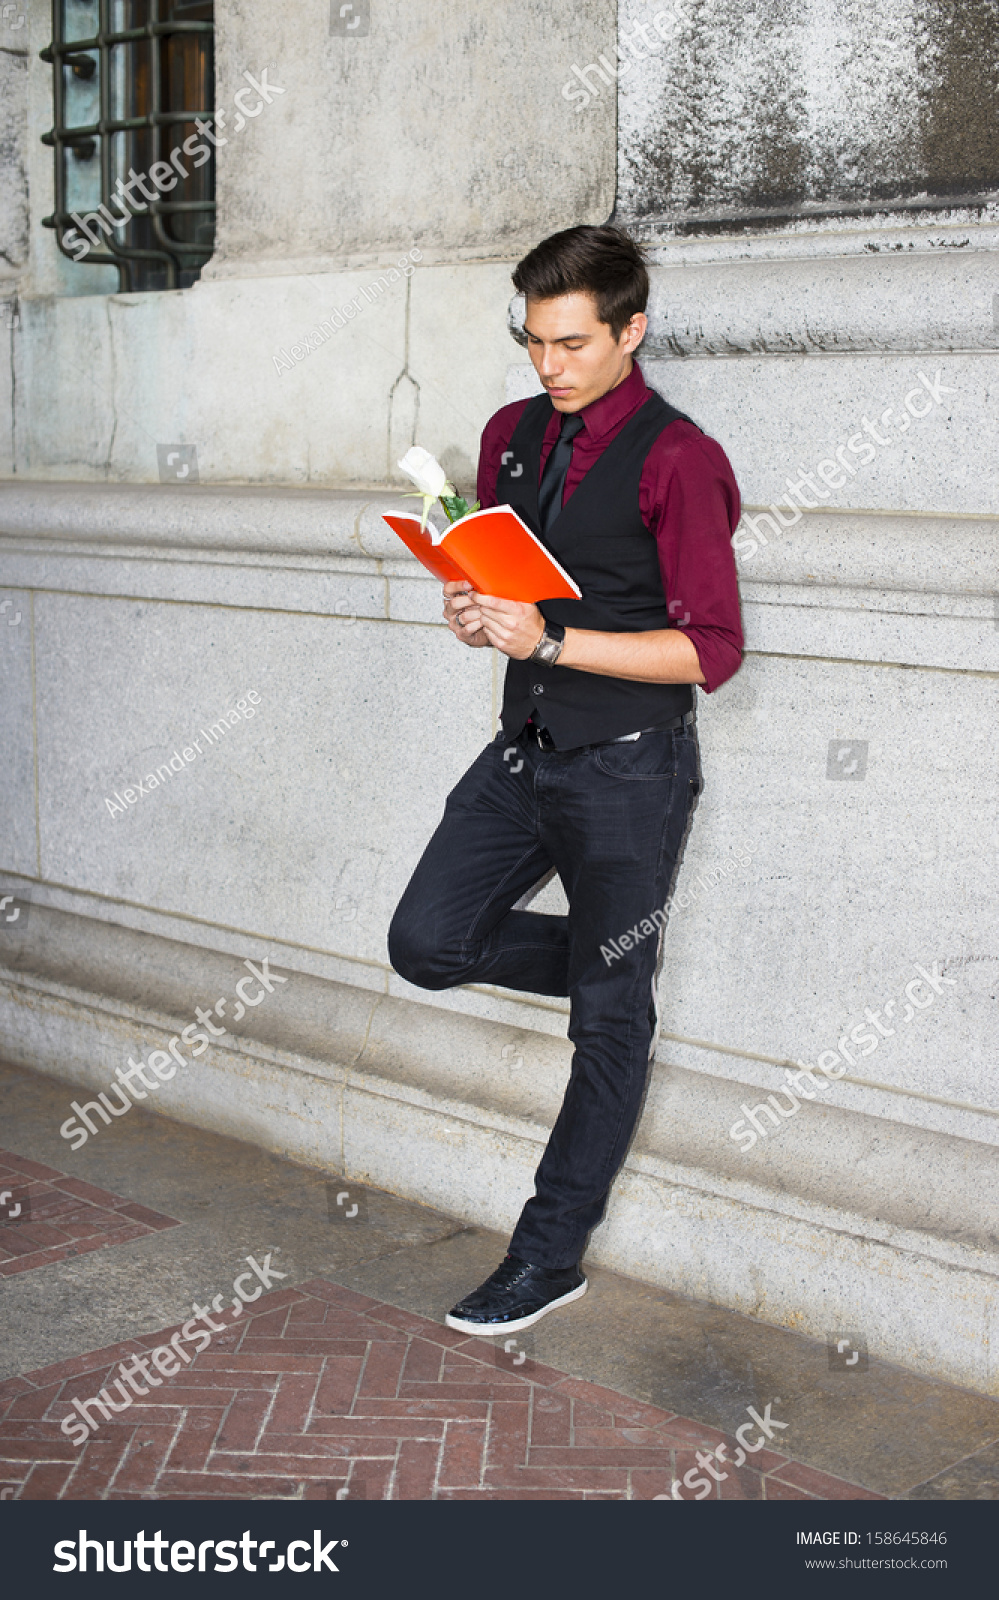 Dressing Red Shirt Black Vest Black Stock Photo 158645846 ...